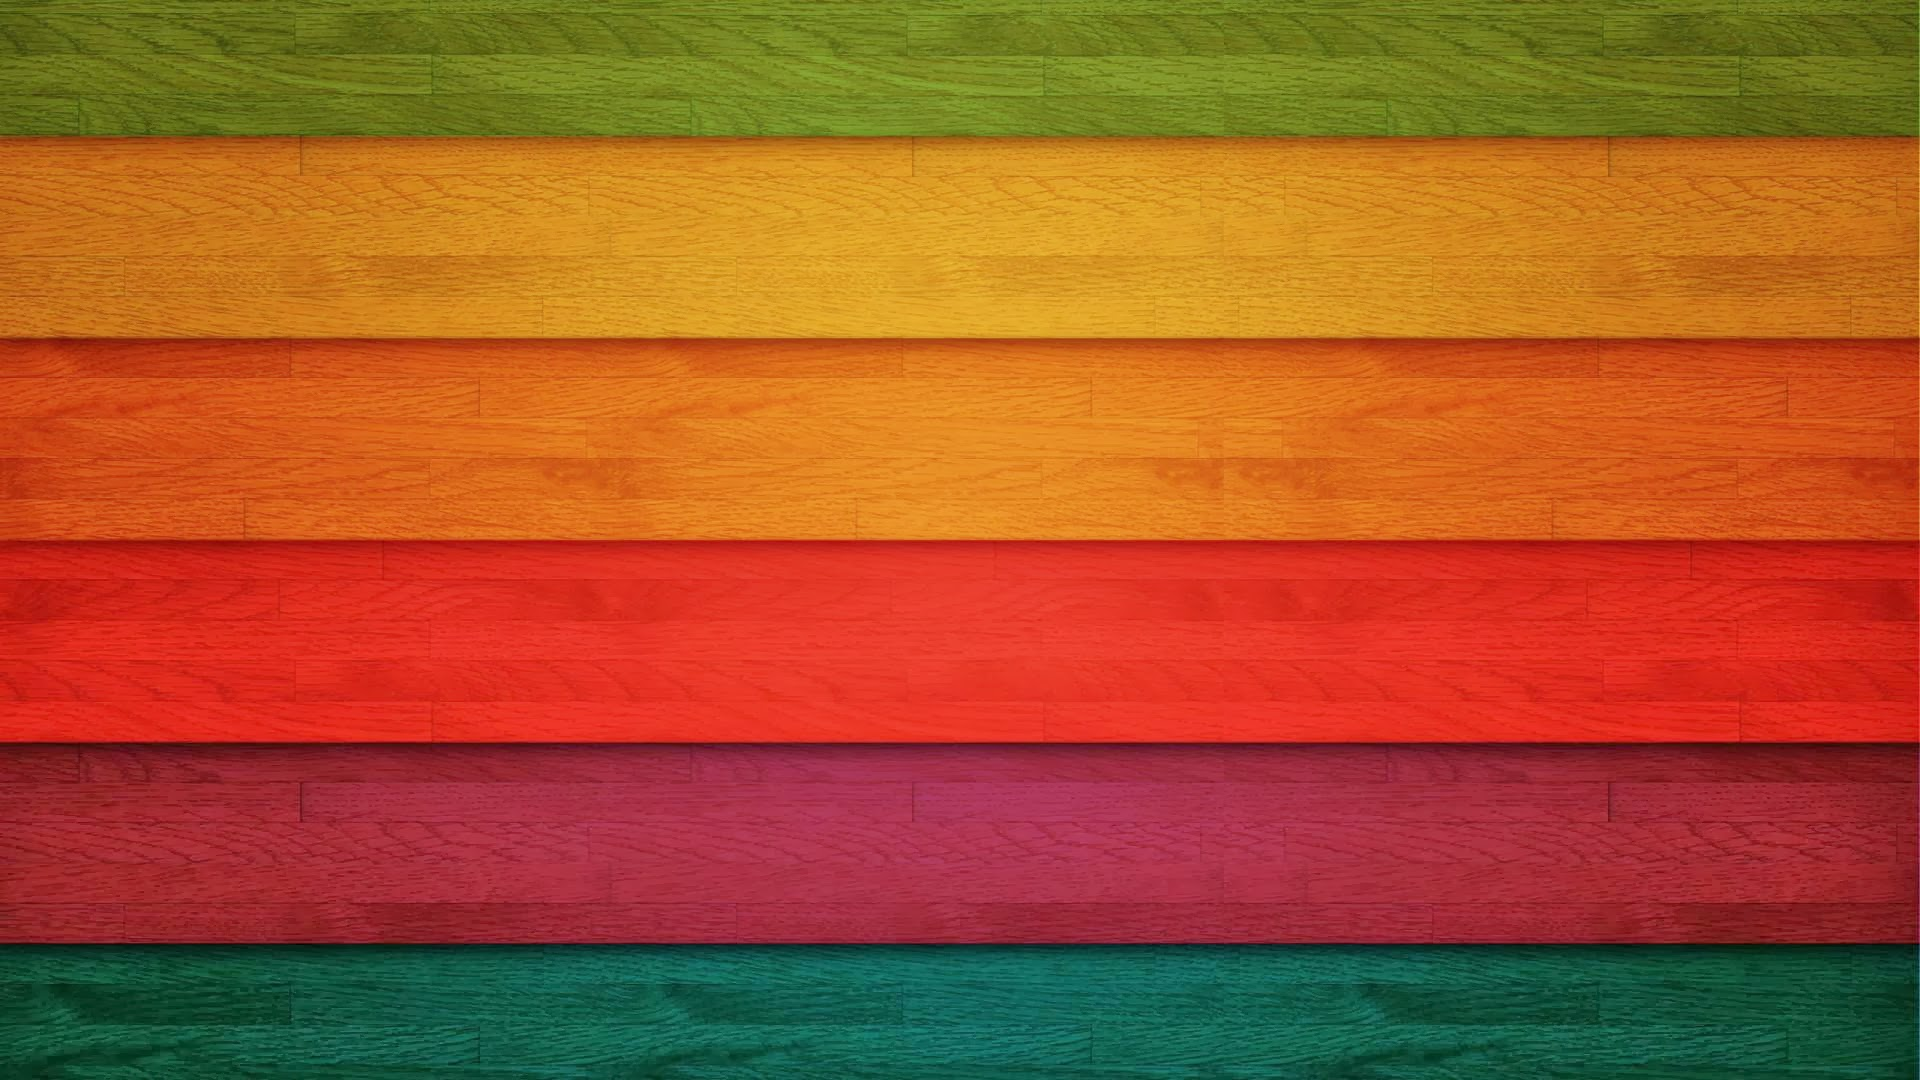 retro colorful background hd - photo #14